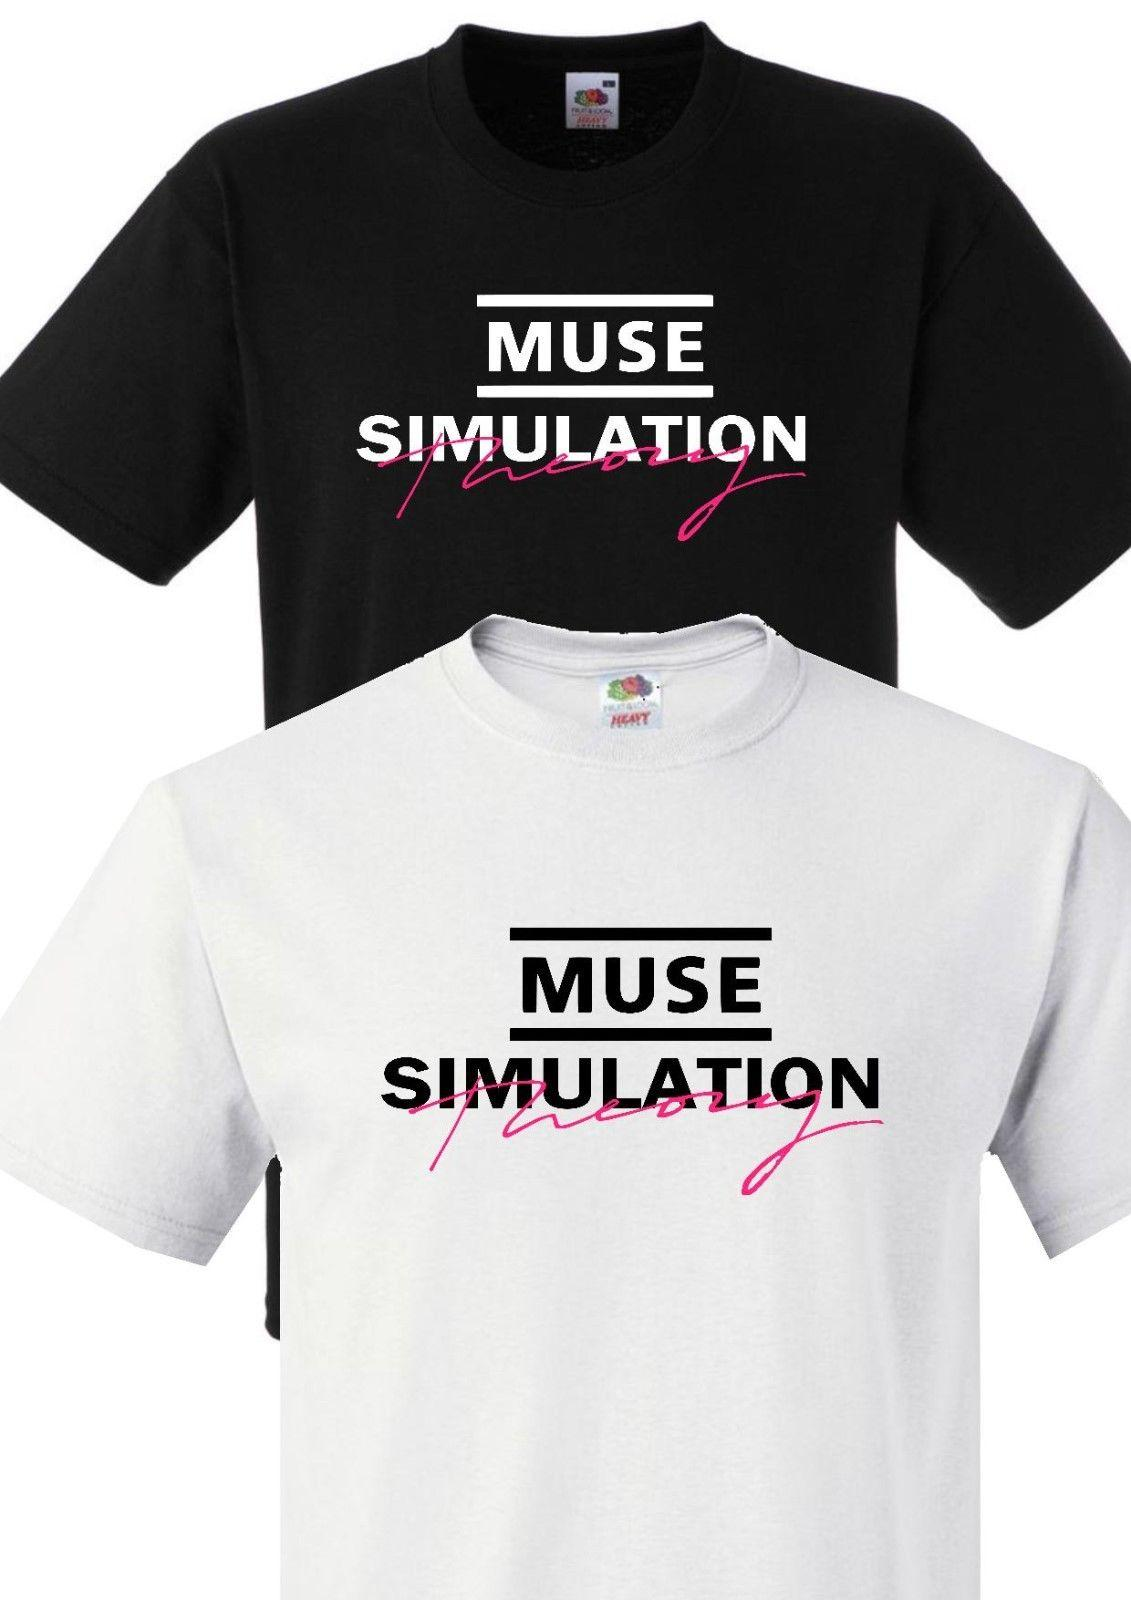 83b7c6cb MUSE SIMULATION THEORY UNISEX T SHIRT S 3XL ROCK CONCERT MUSE TOUR  ALBUMFunny Unisex Casual Designer White T Shirt Printed T Shirts Funny From  Shirtquarters ...